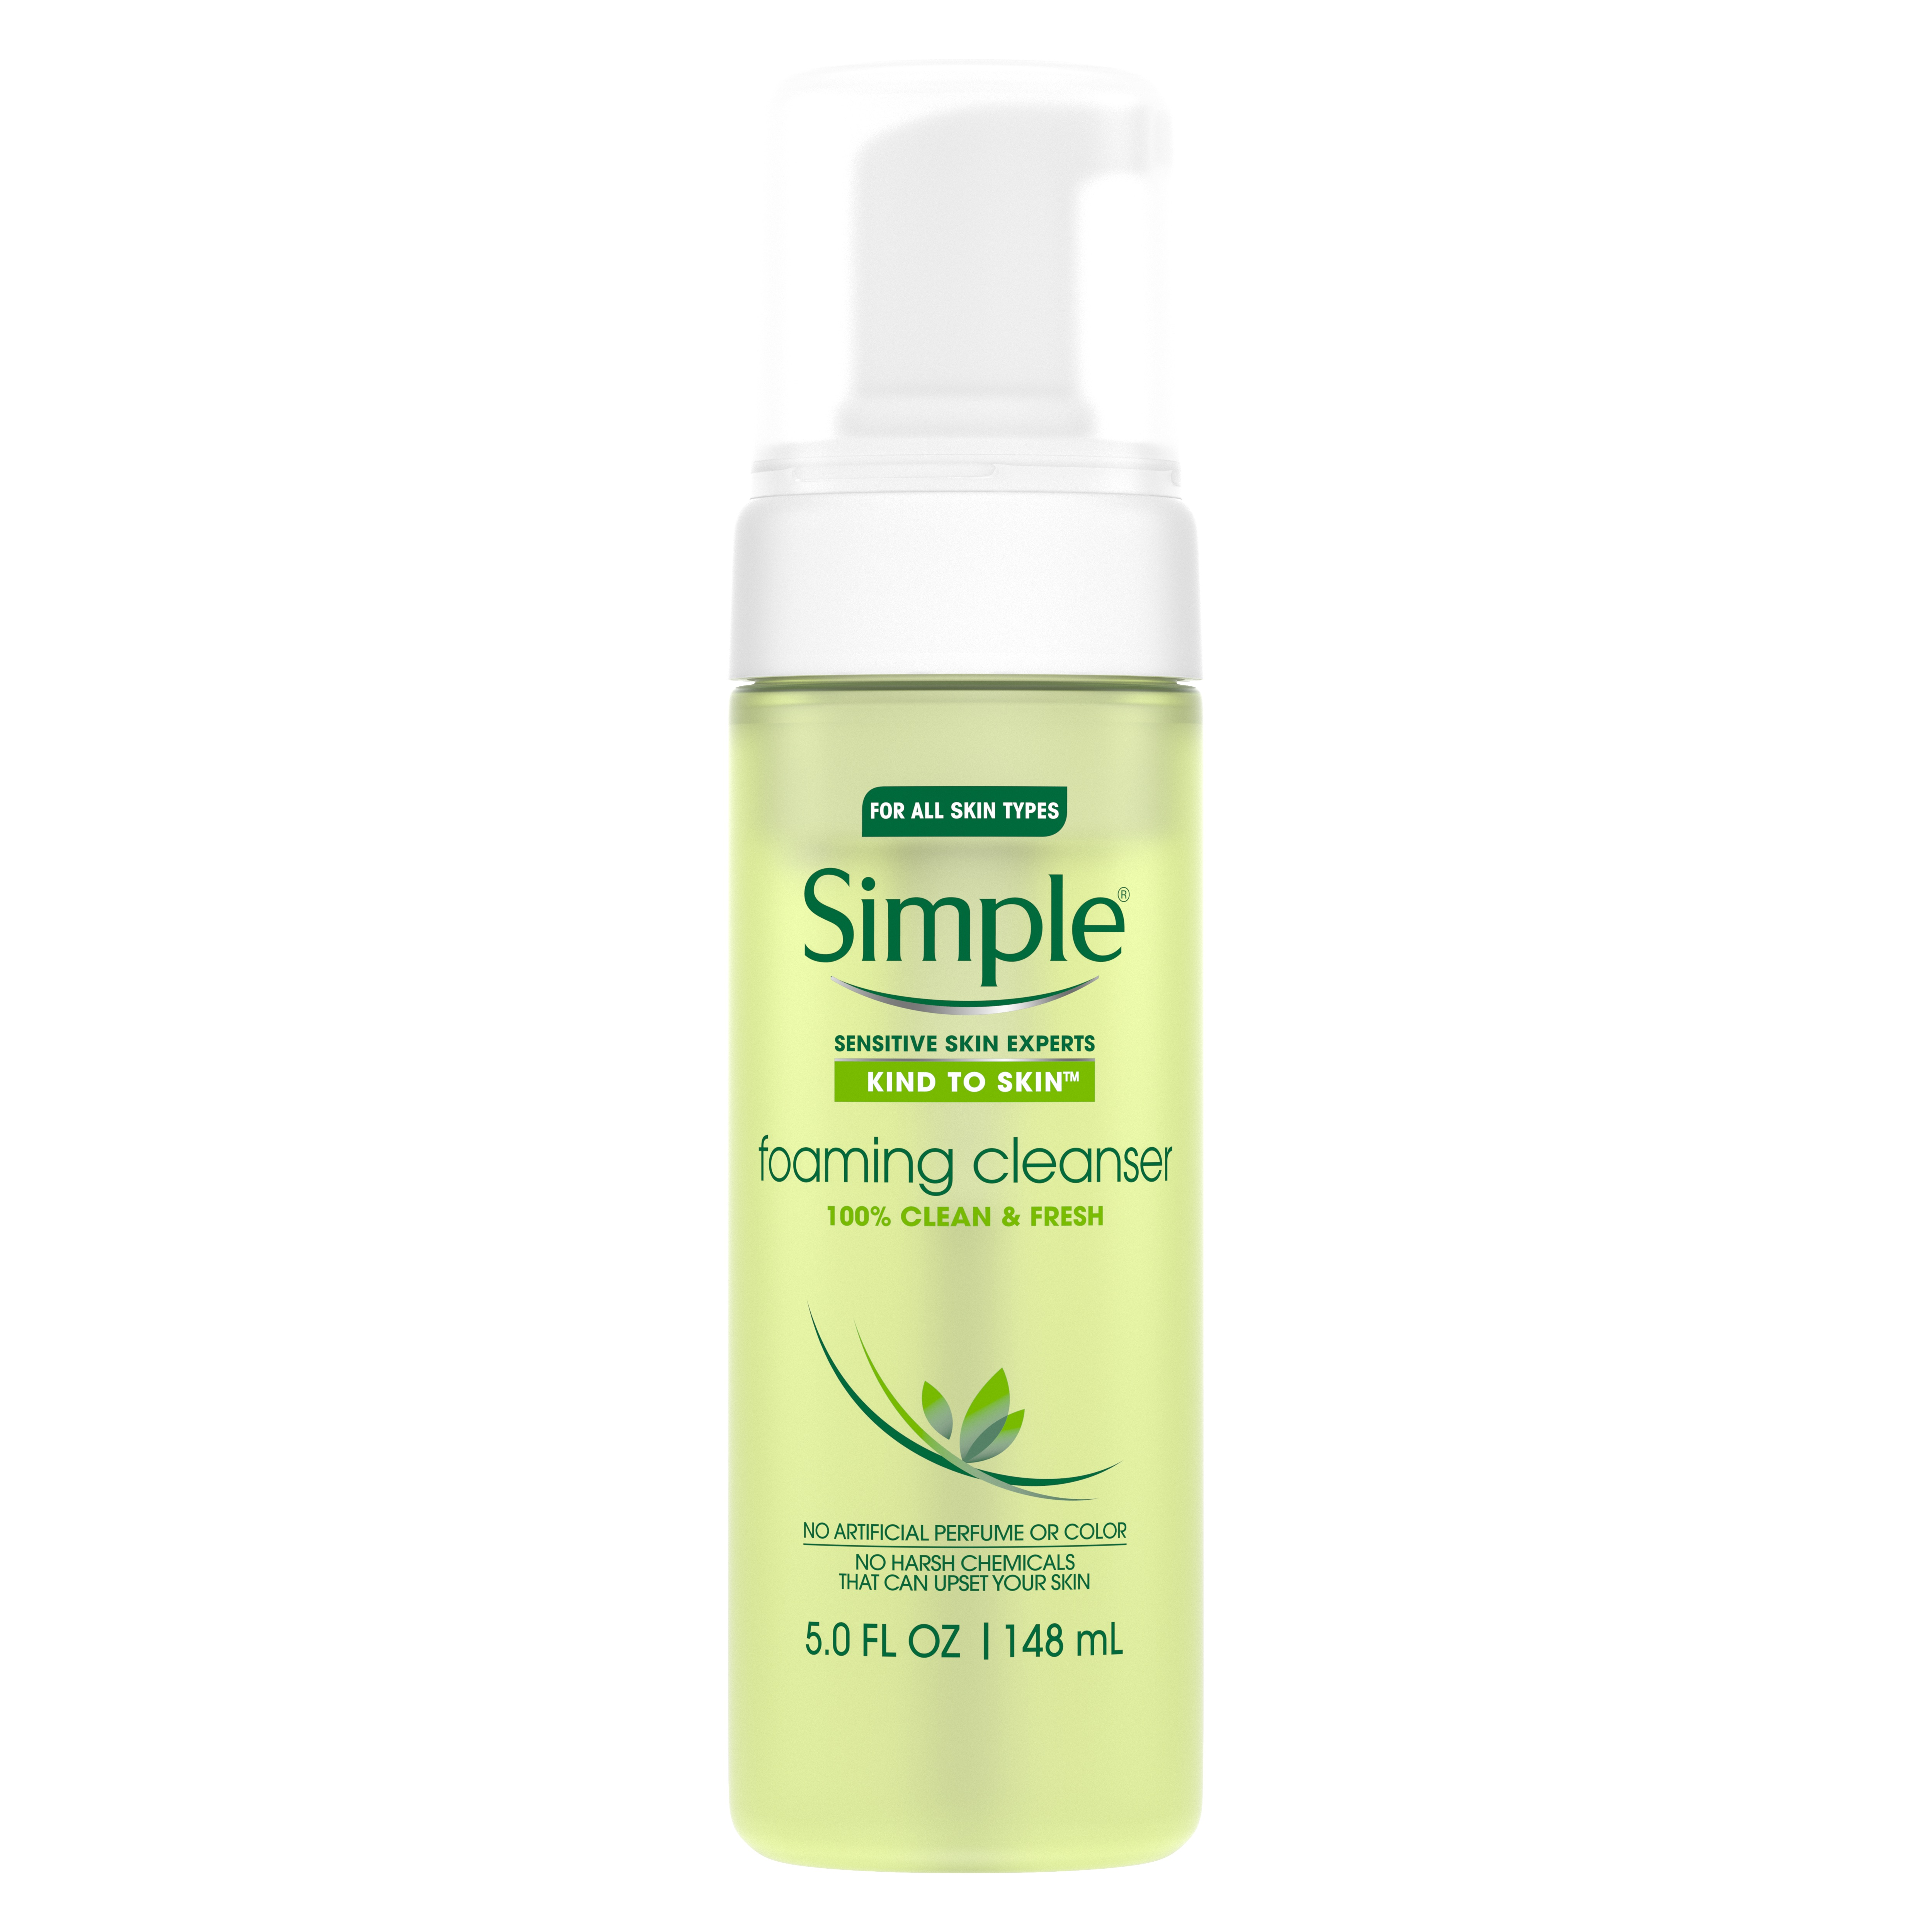 simple skincare routine and products; foaming cleanser